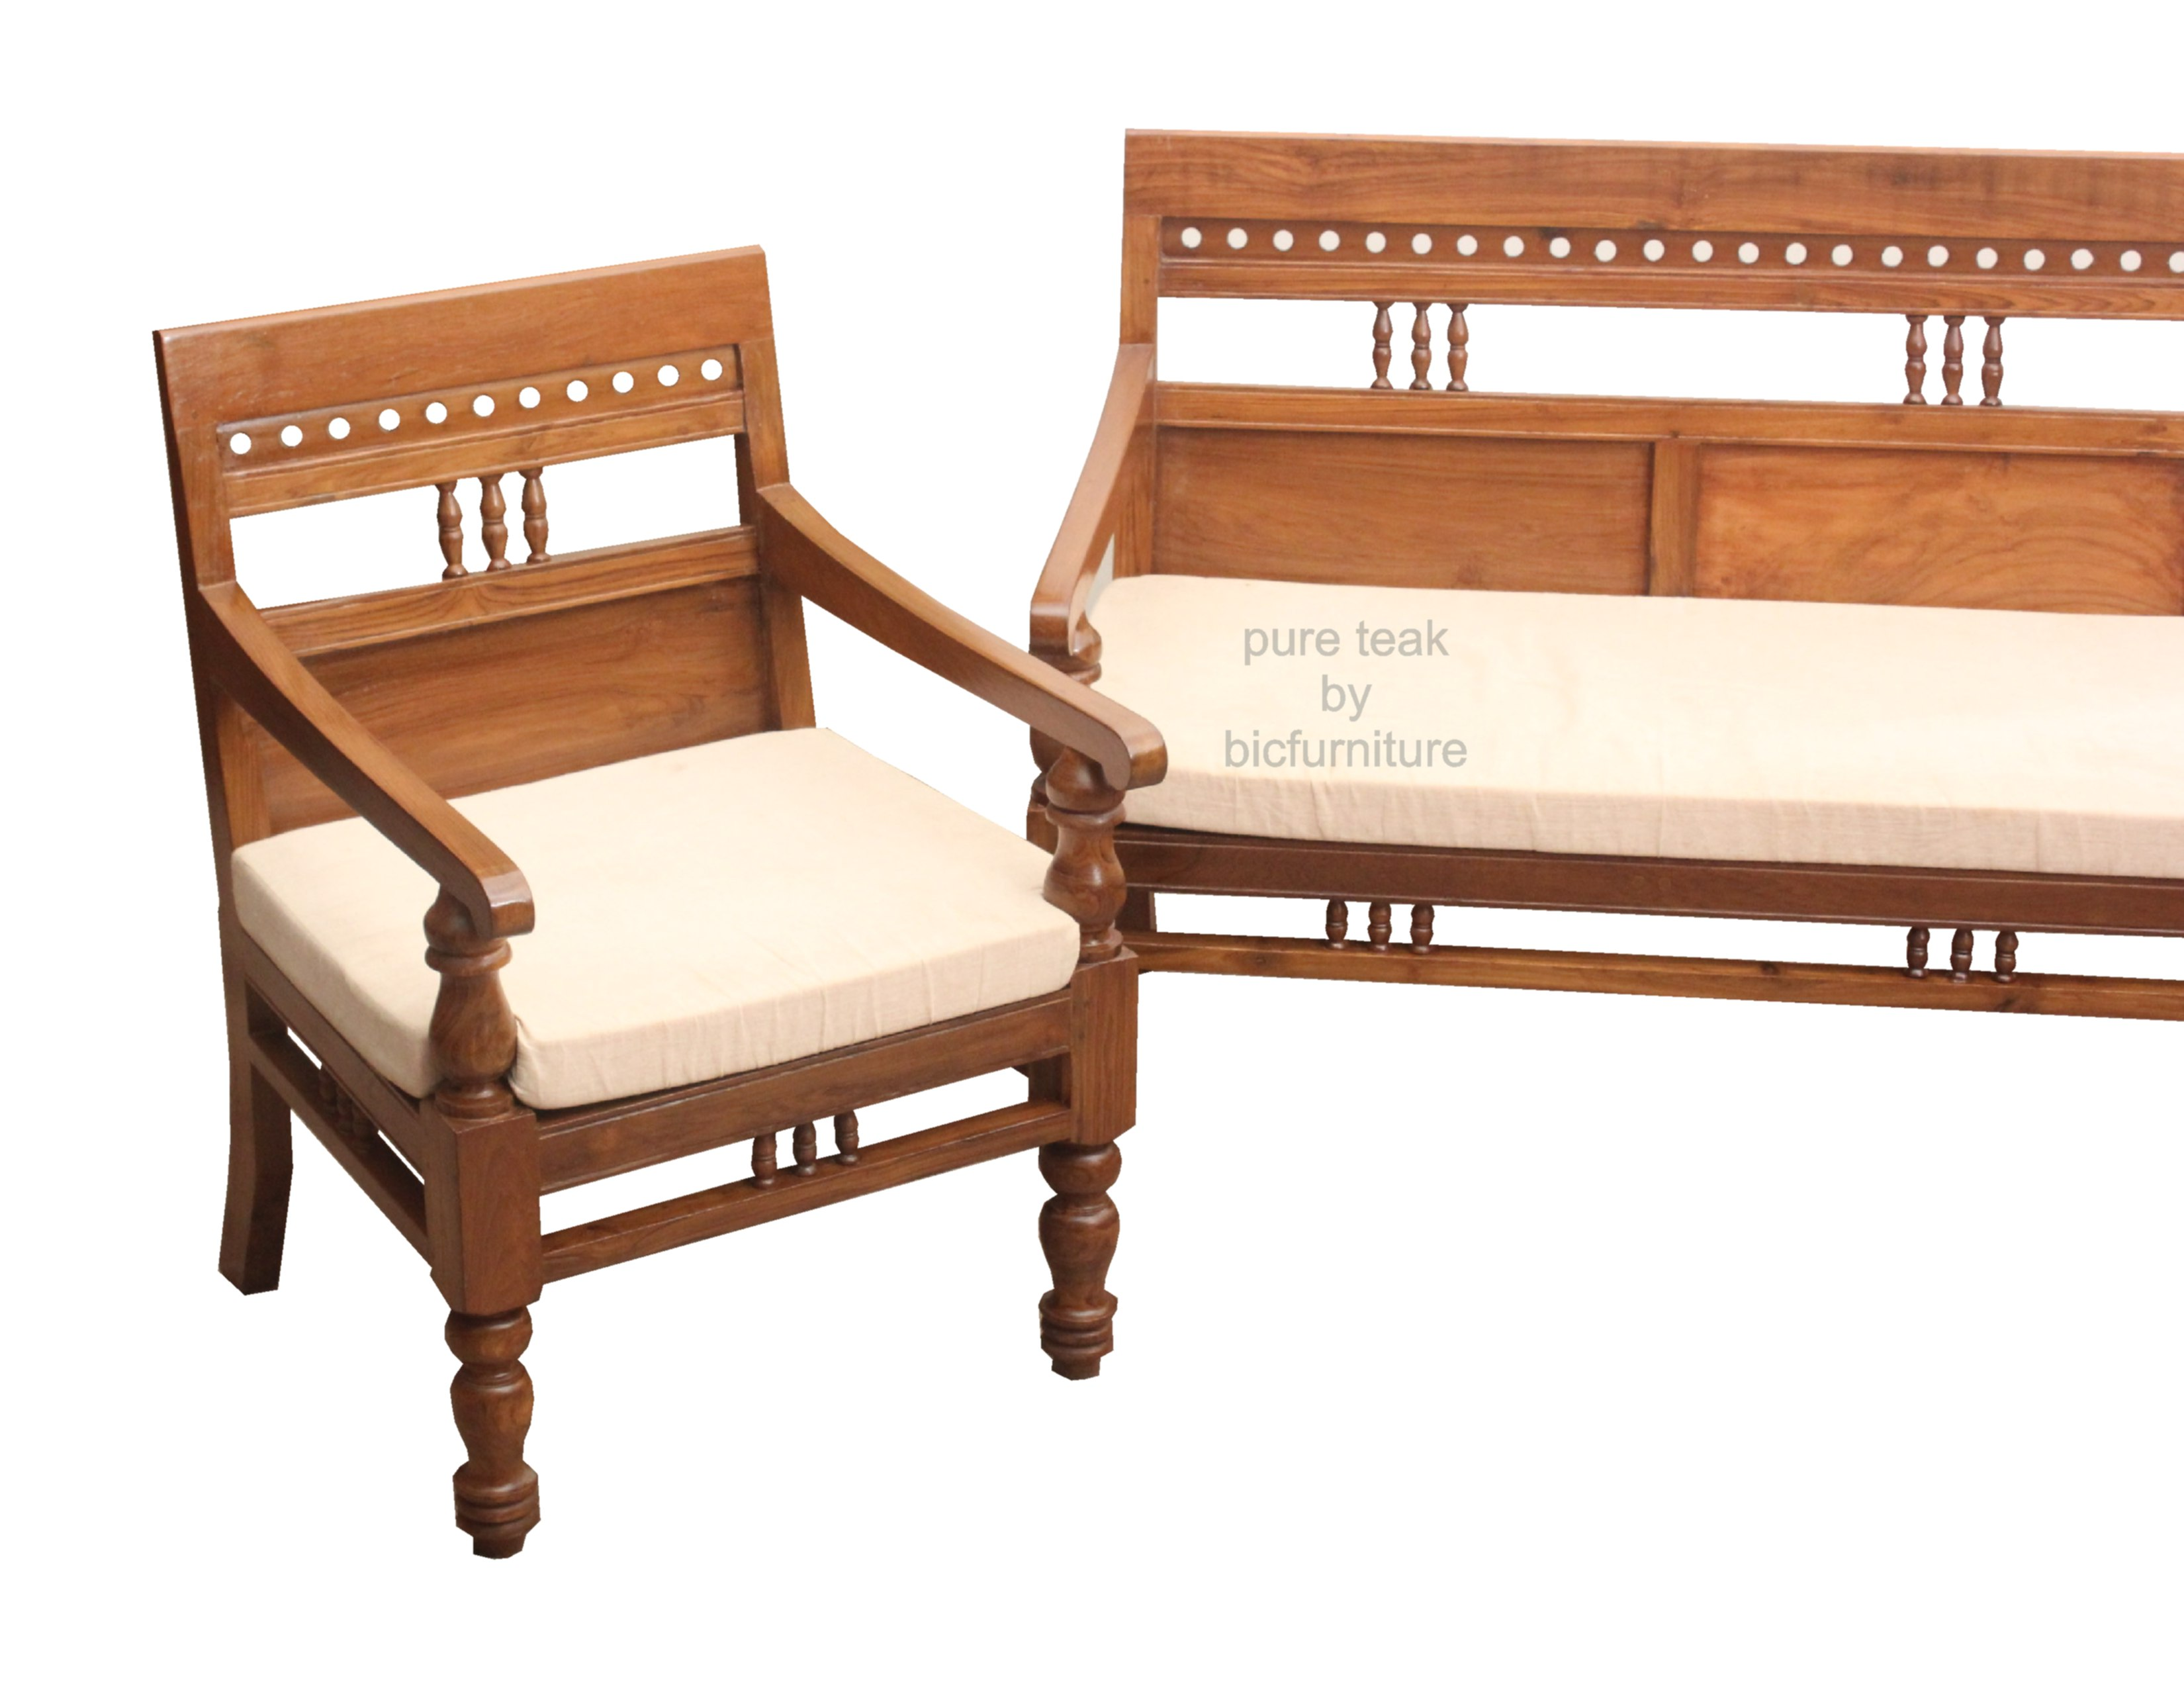 Wooden Sofa With Carving